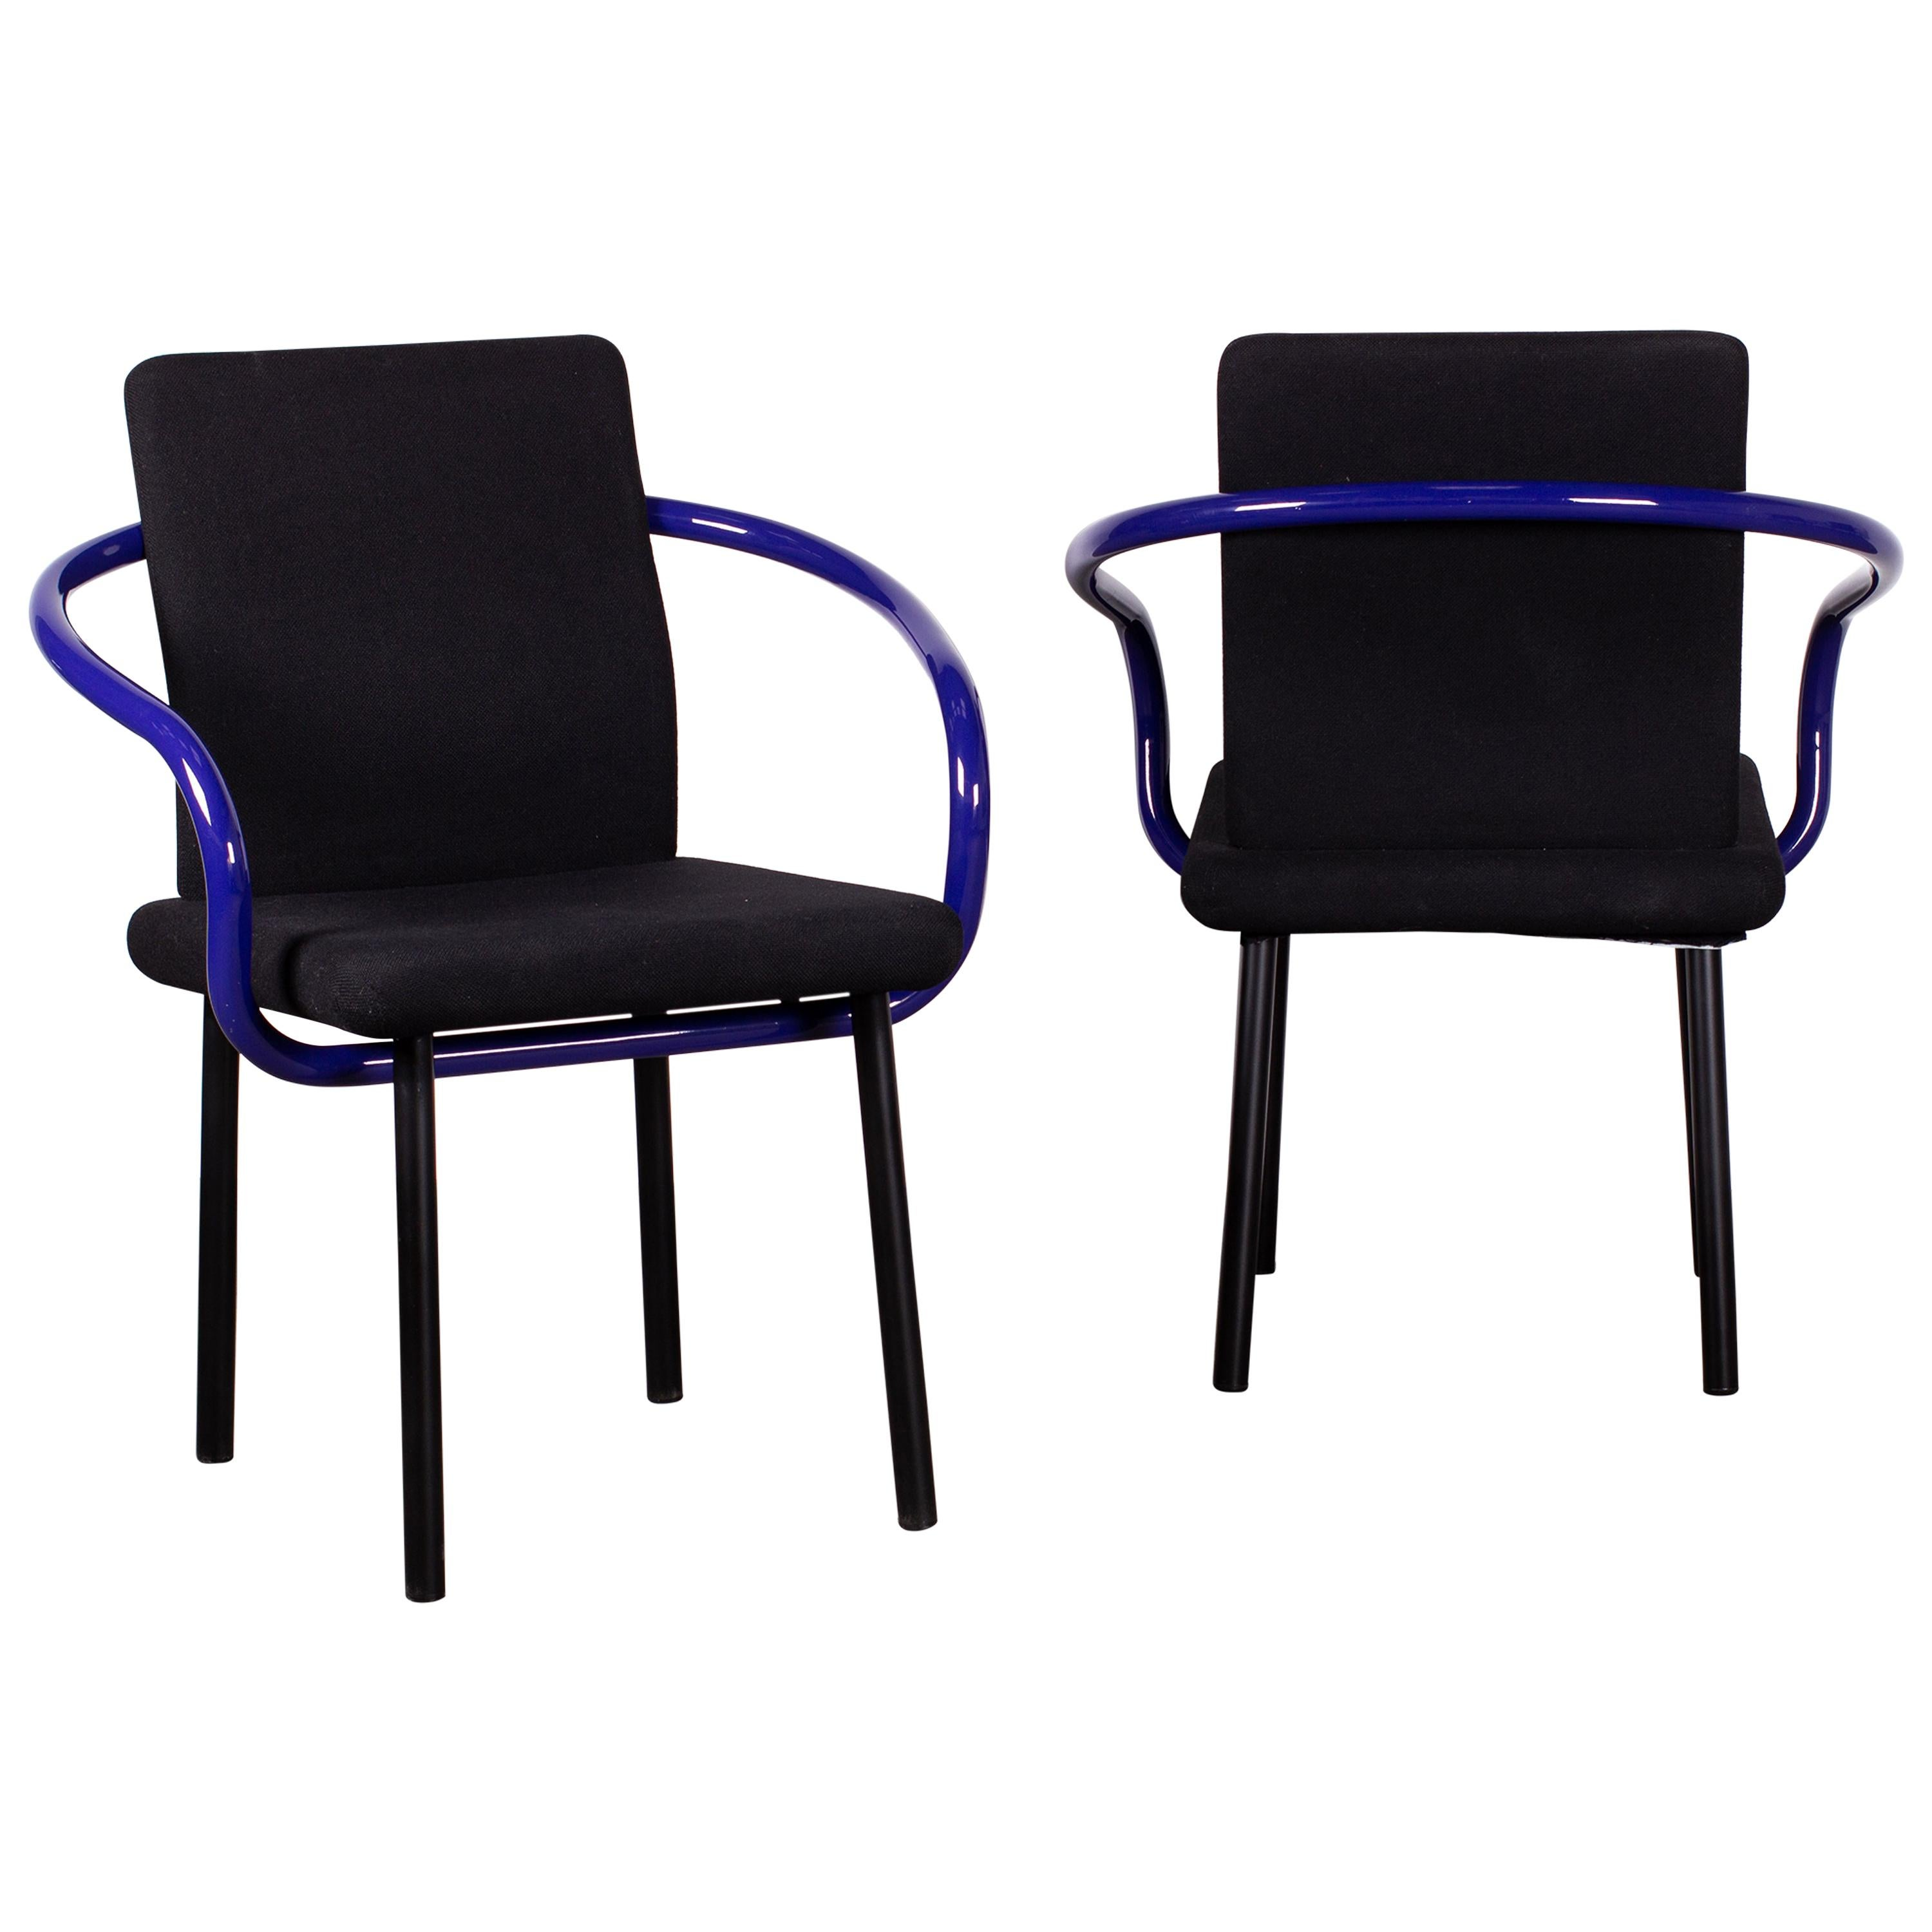 Pair of Ettore Sottsass Mandarin Chairs for Knoll in Violet & Black